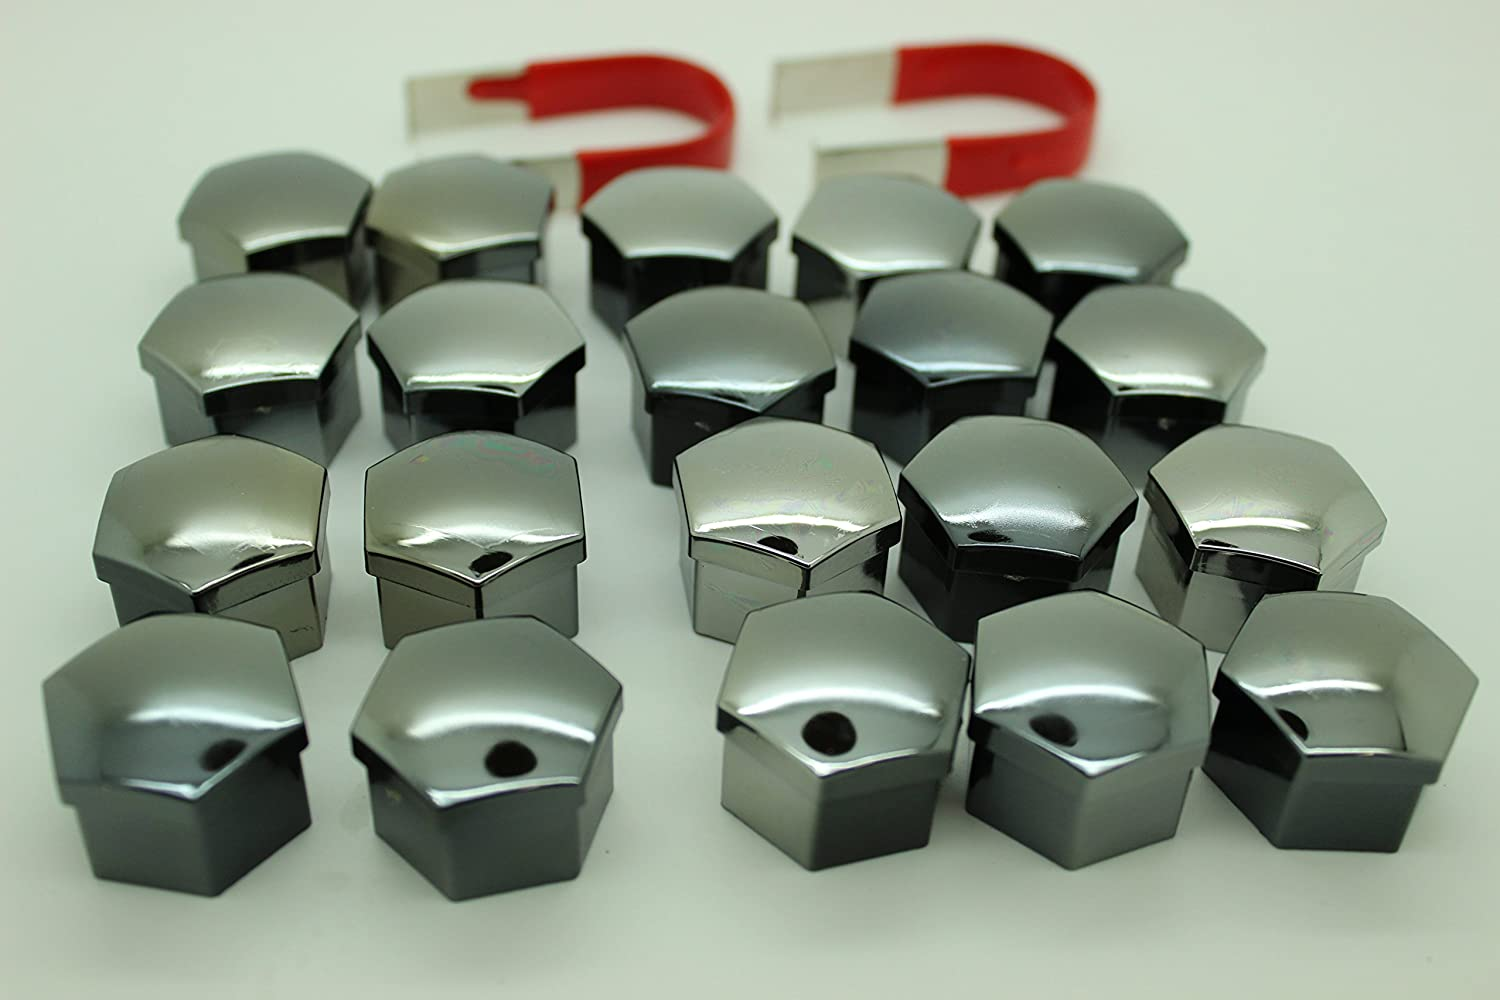 20x Universal Wheel Nut Covers Hex in Various colours comes with Removal Tools (SMOKED CHROME 17mm)